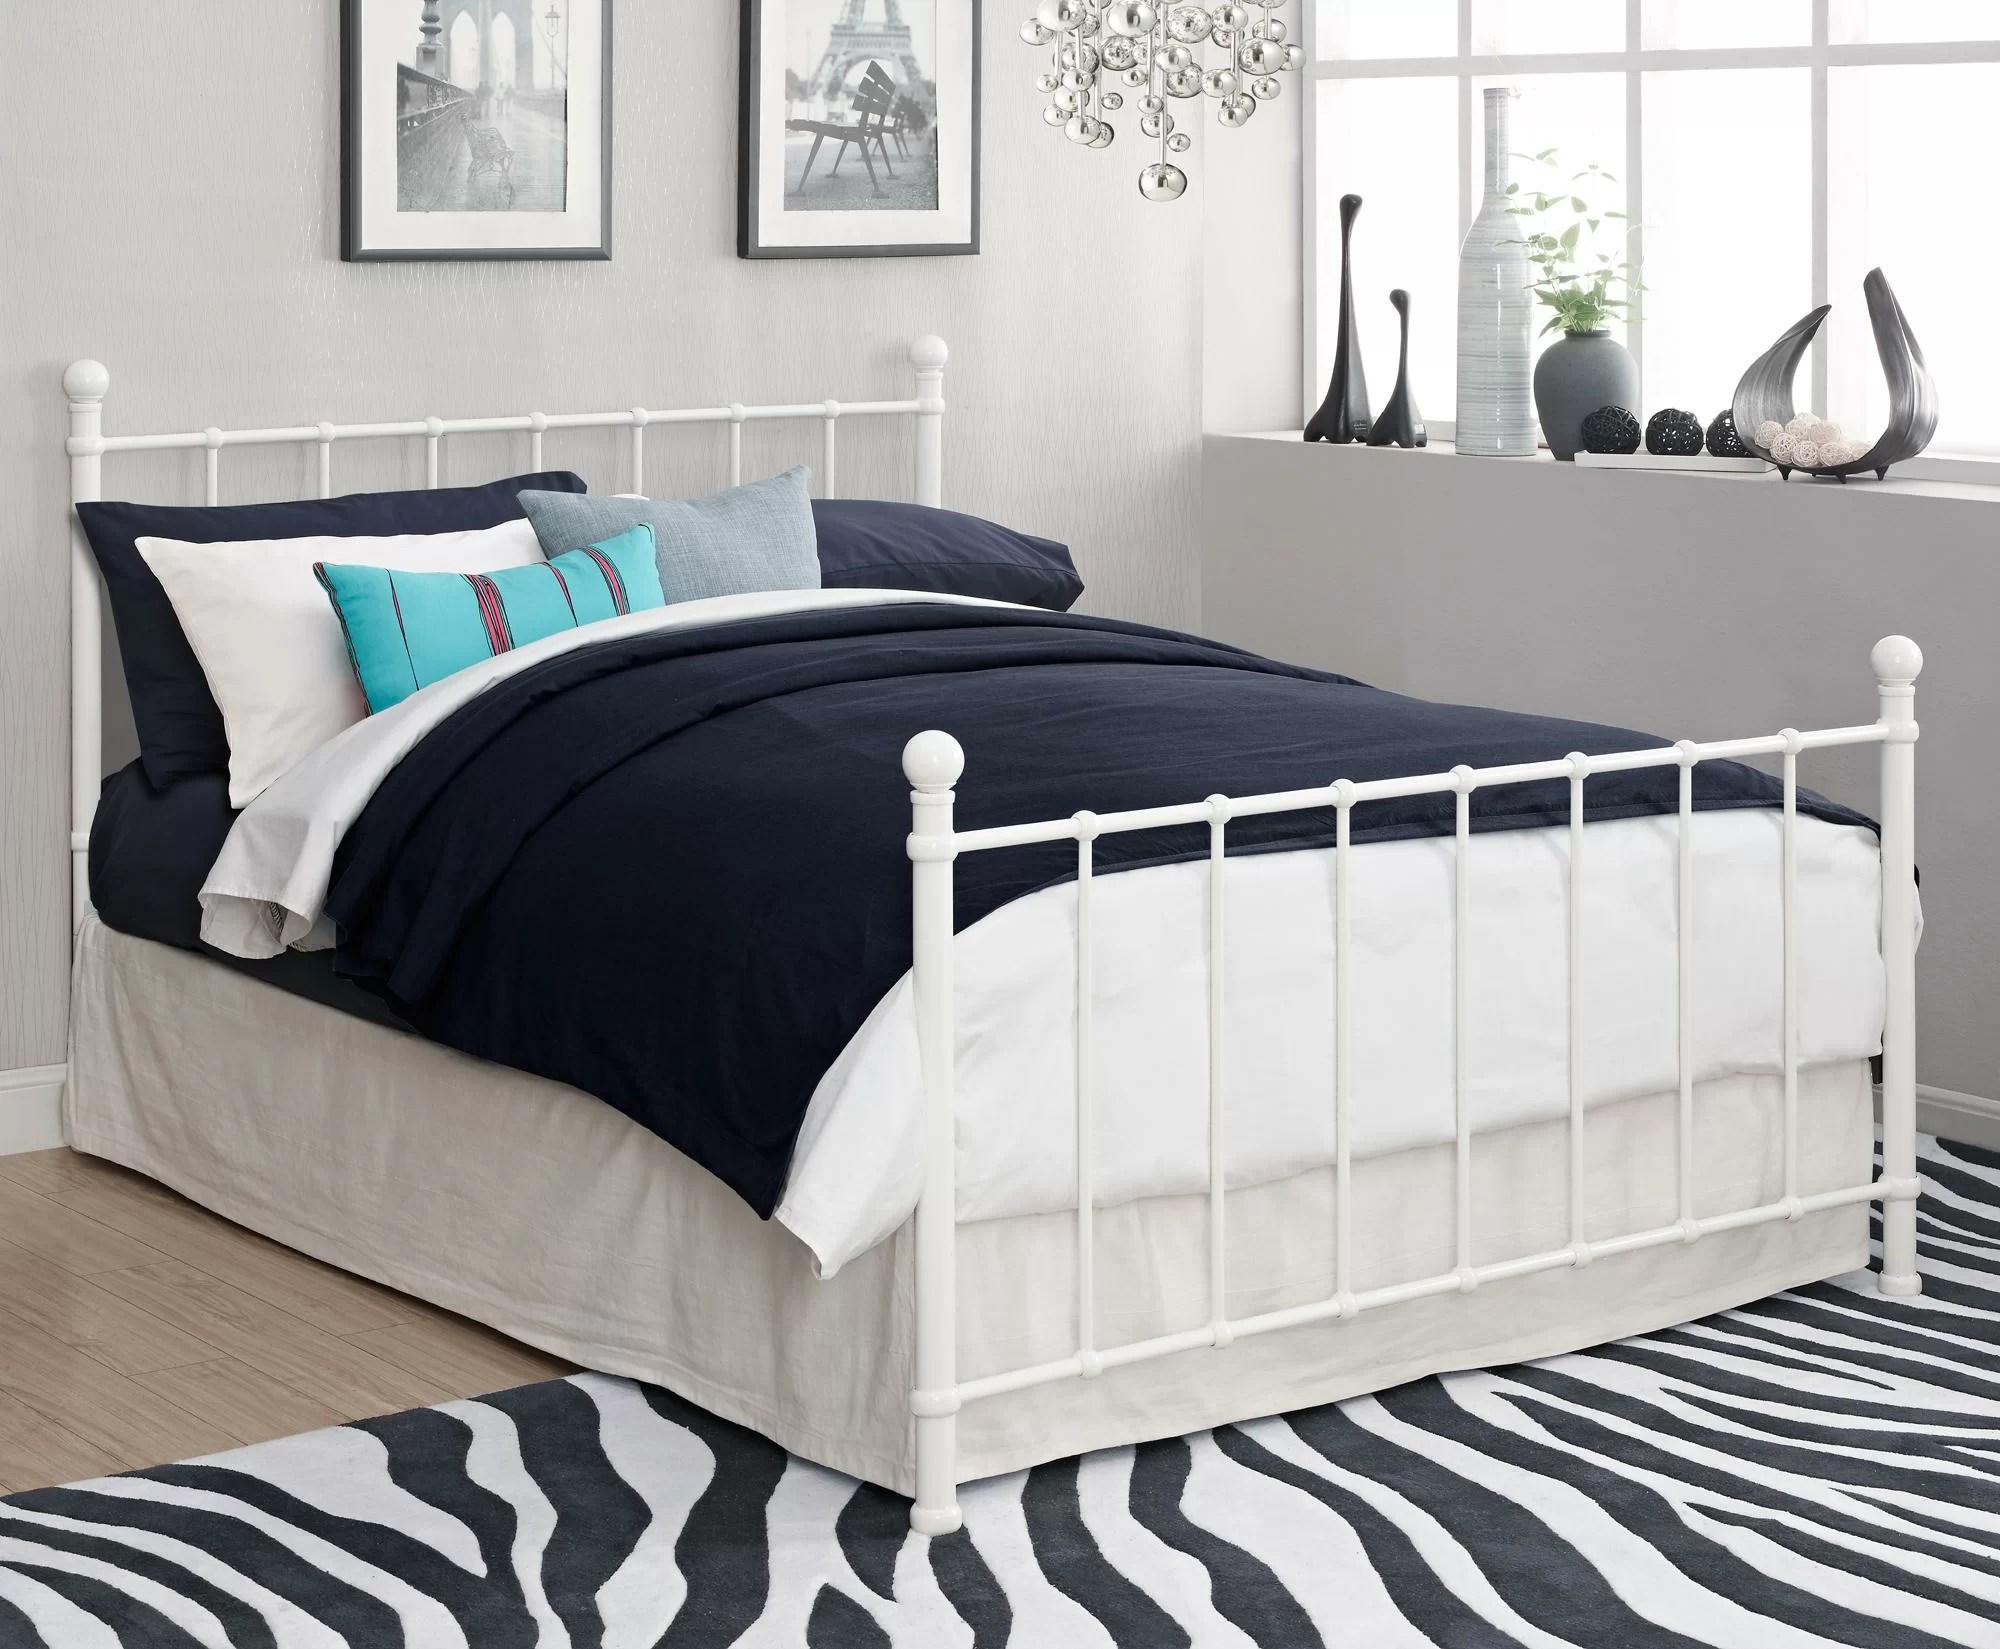 Full Double Bed August Grove Eleanore Full Double Platform Bed